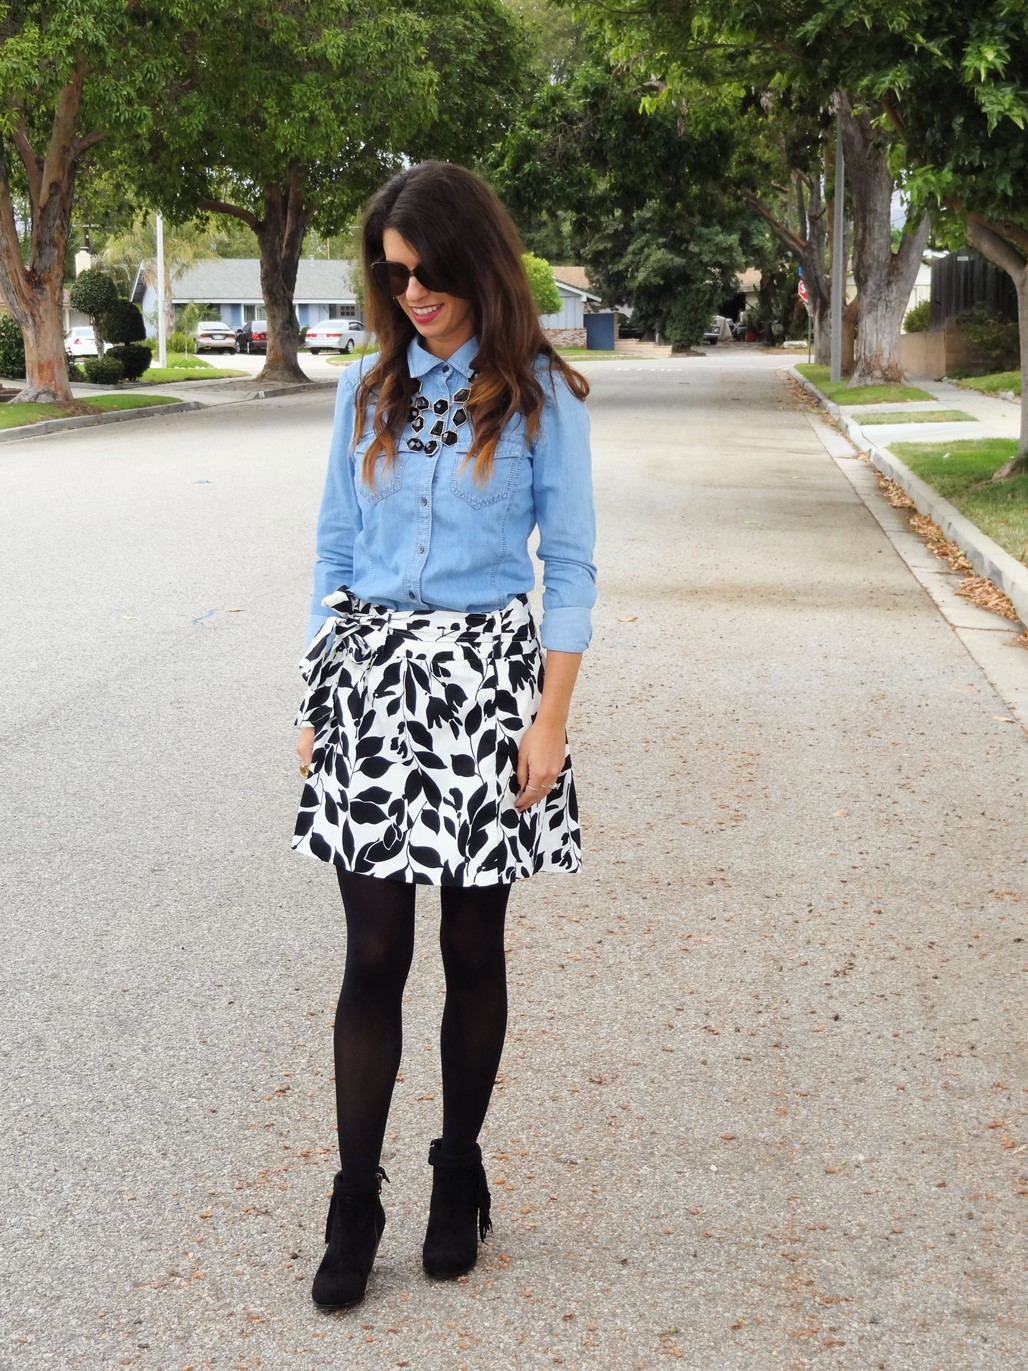 1. Wear of the Week Booties + Skirt